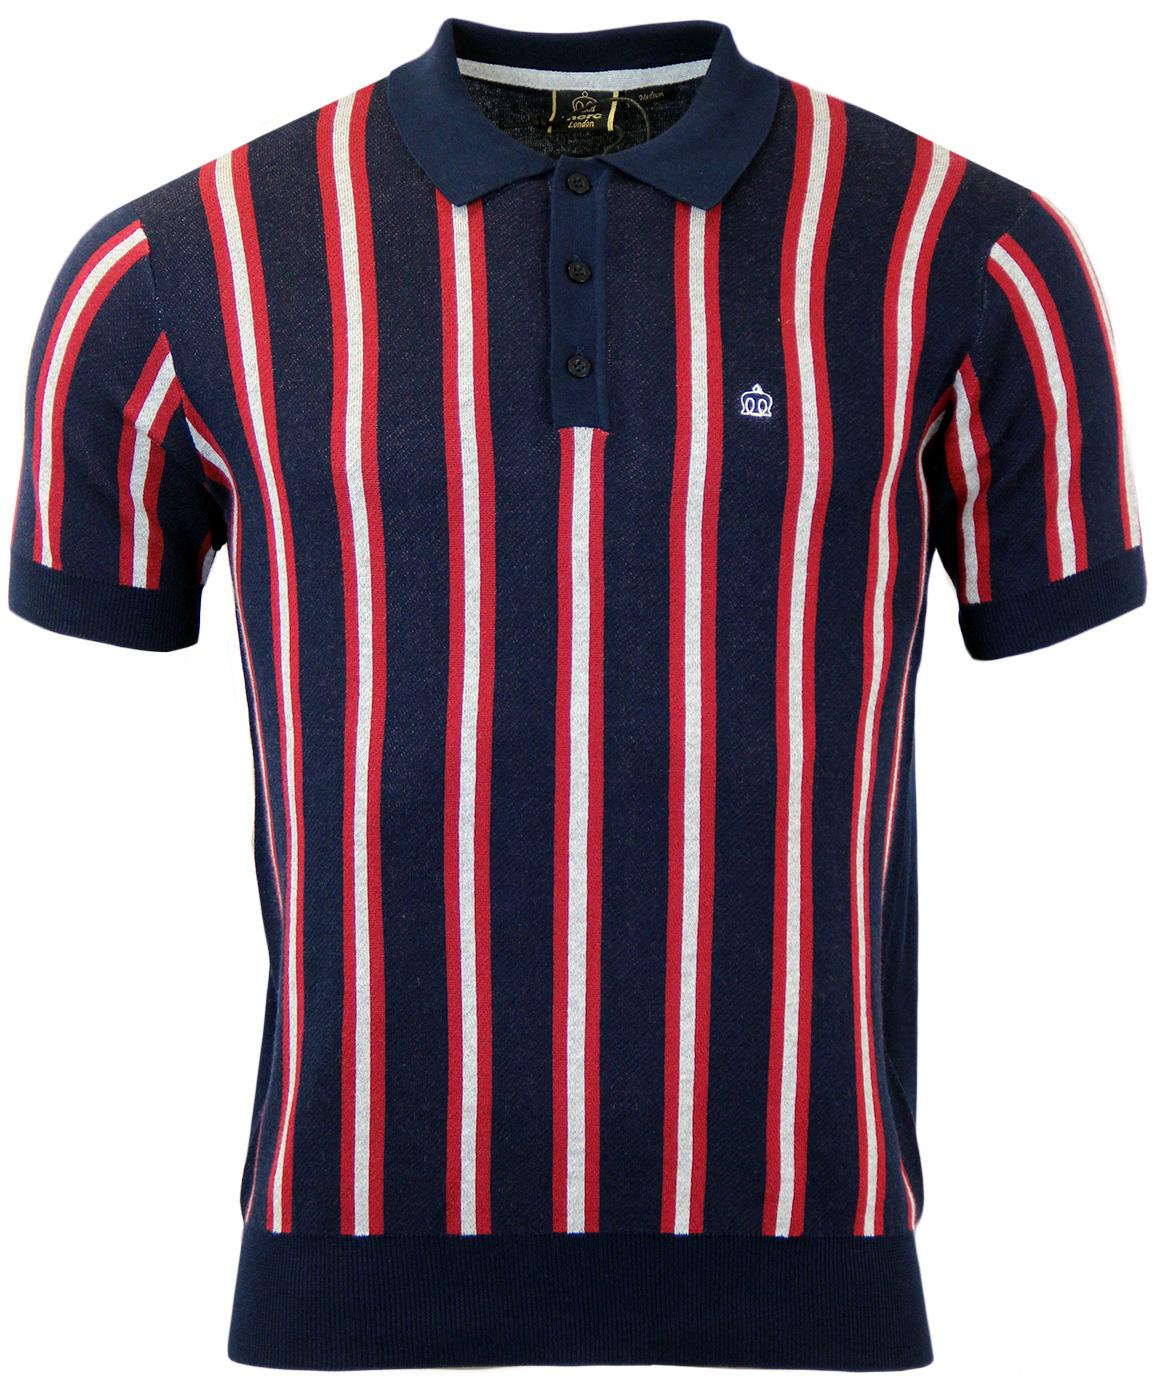 Jobling MERC Retro Mod Boating Stripe Knitted Polo